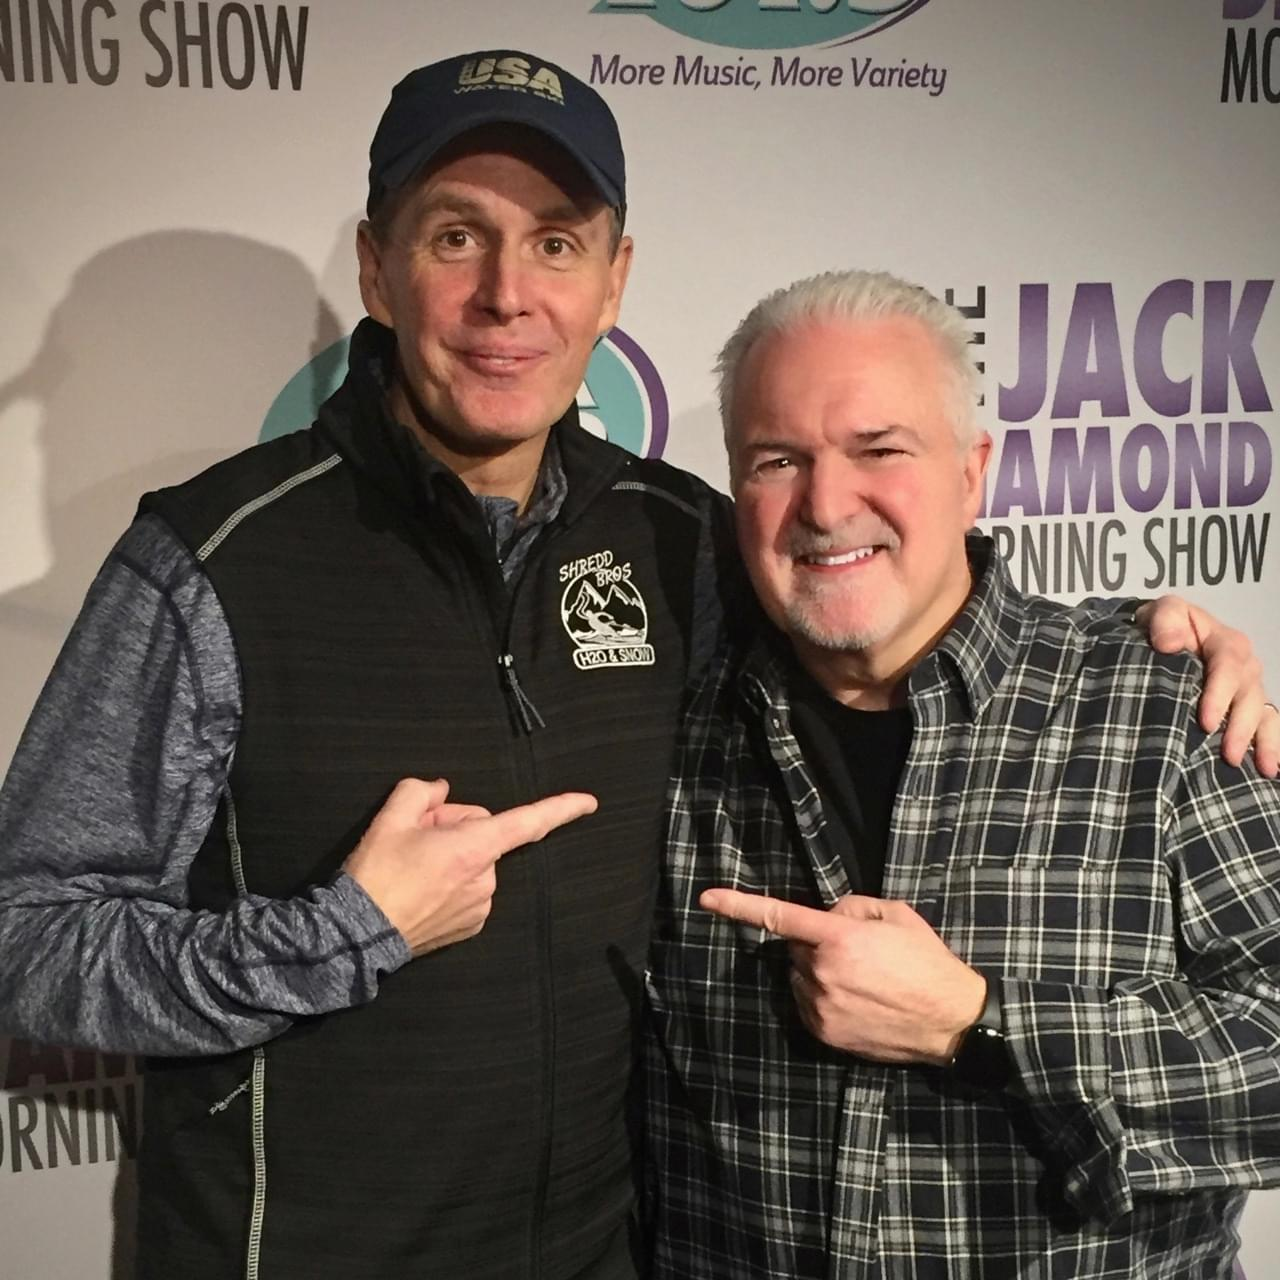 The Jack Diamond Morning Show Welcomes Comedian Bob Marley!